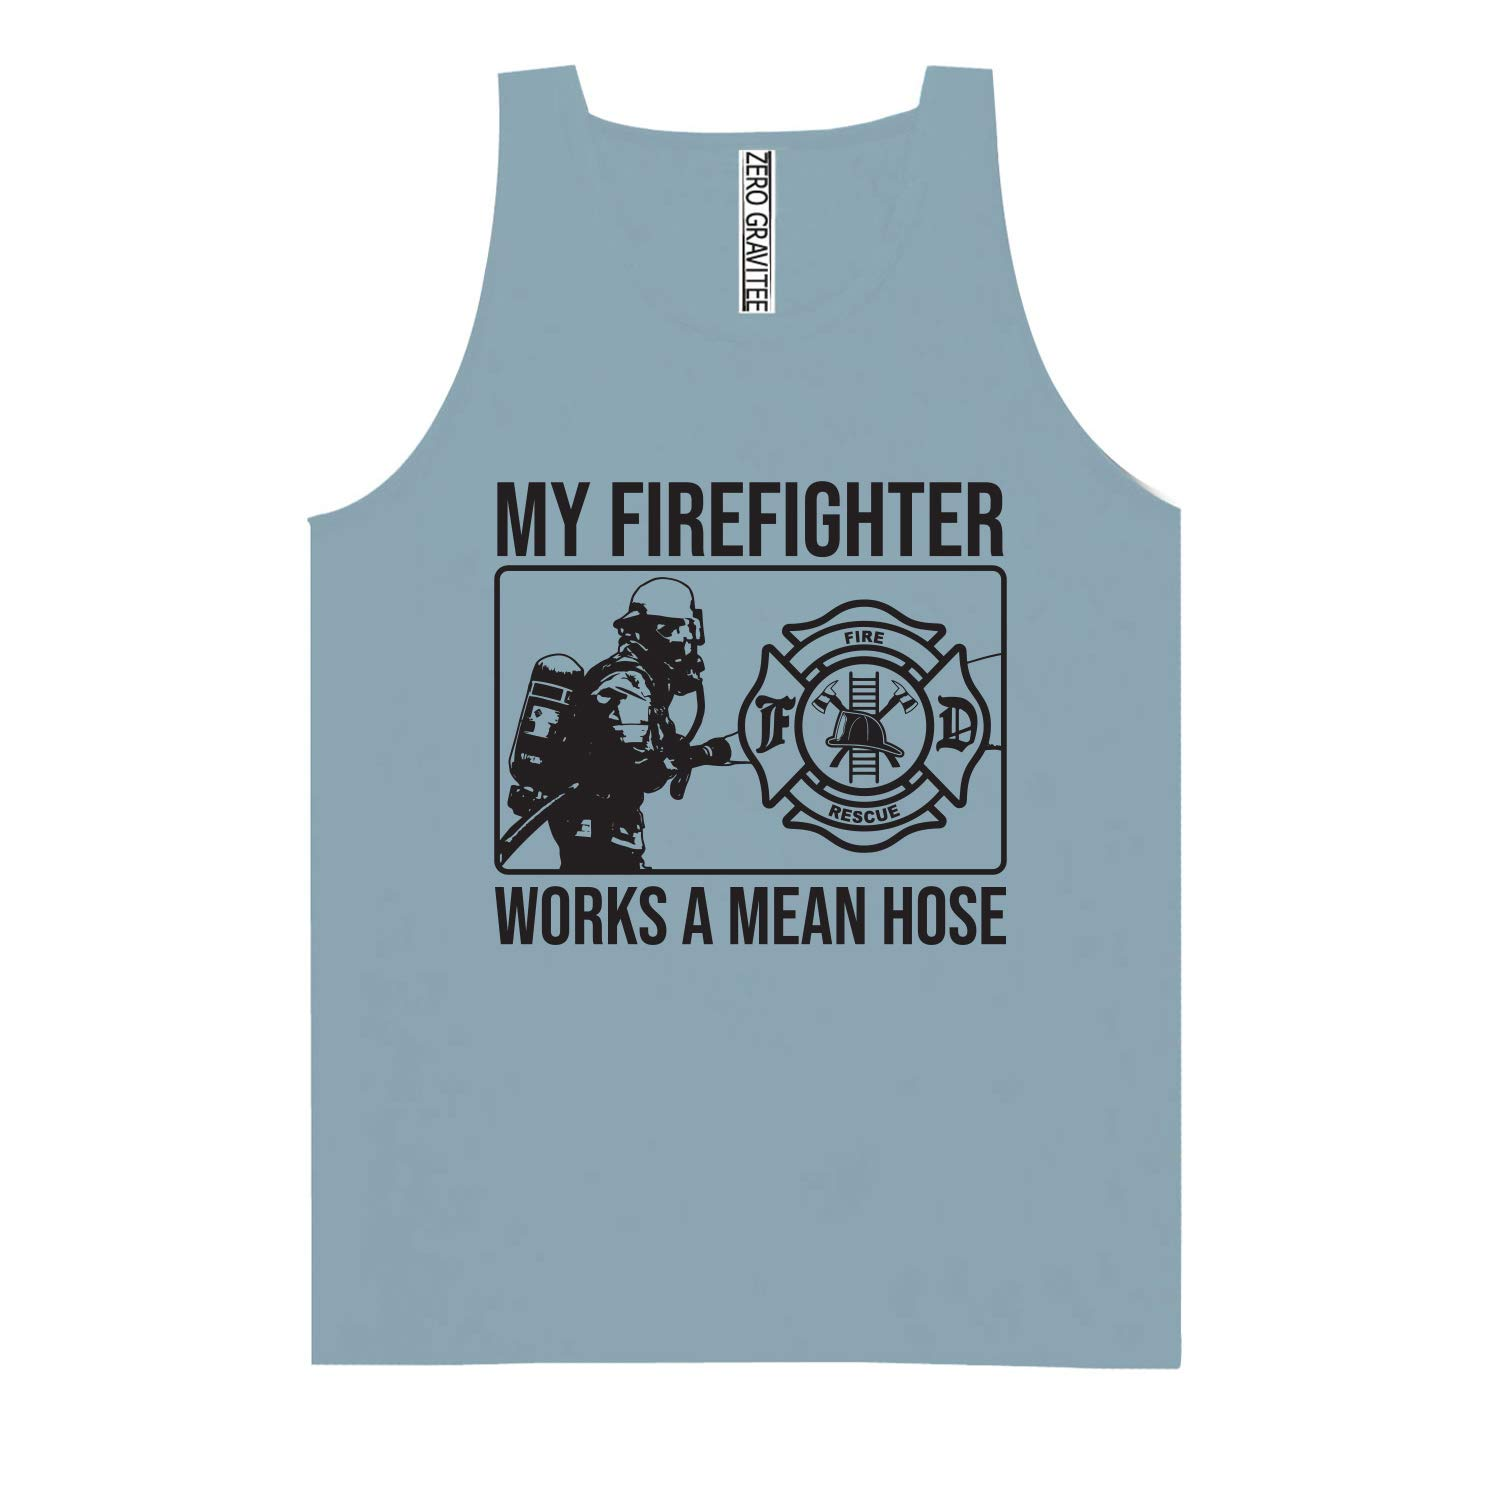 My Firefighter Works a Mean Hose Adult Pigment Dye Tank Top